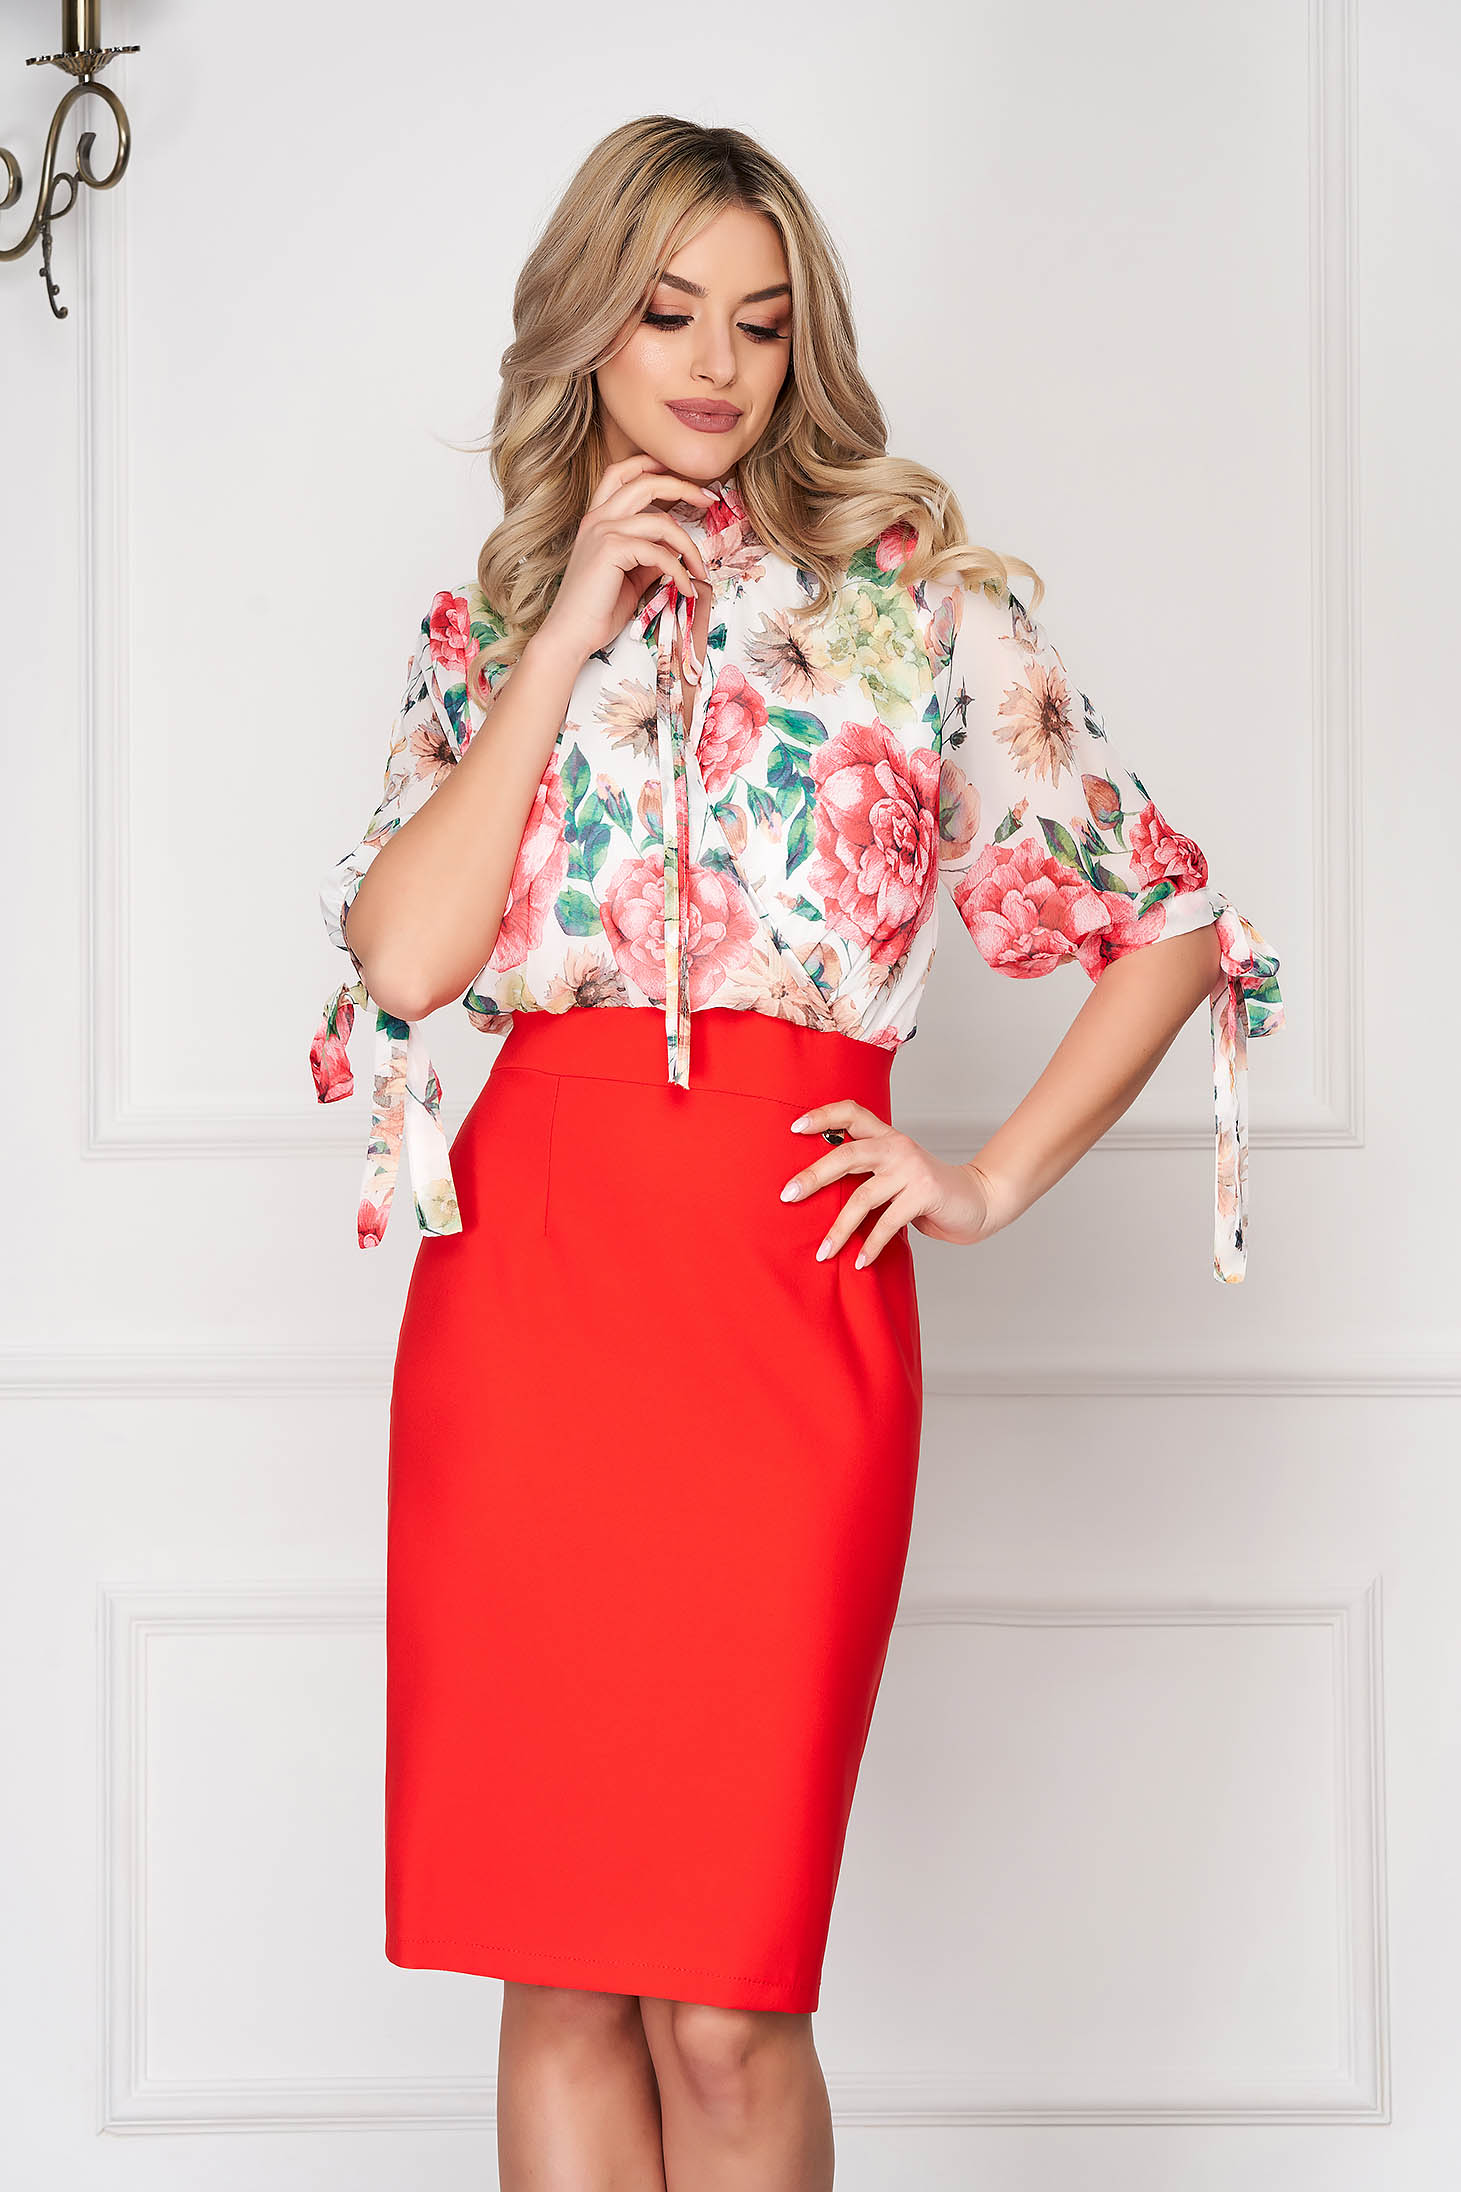 Coral elegant daily pencil dress with 3/4 sleeves with floral prints